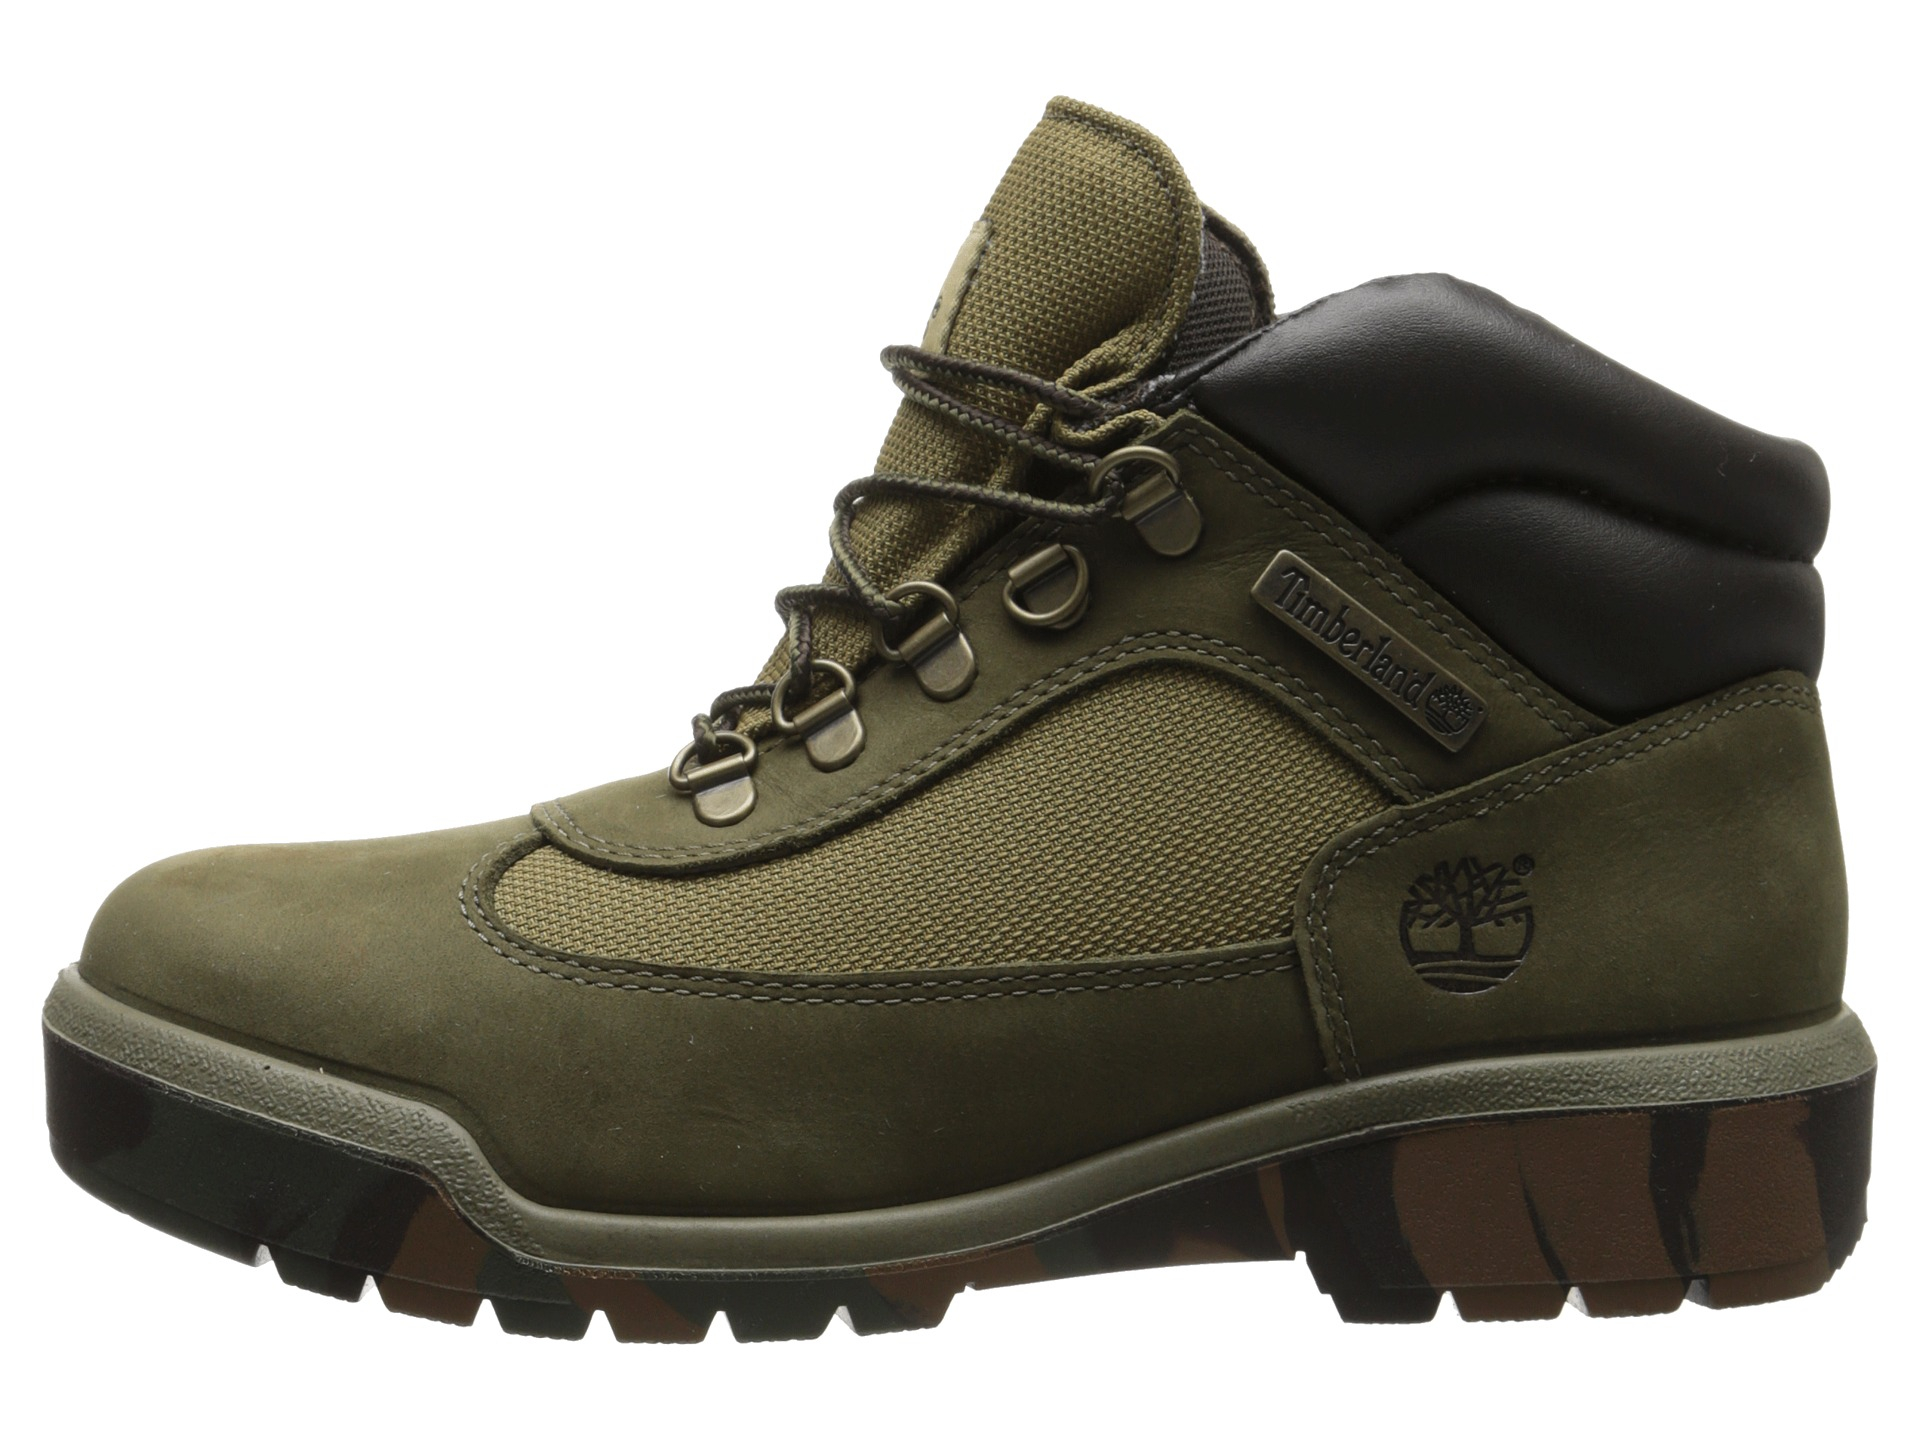 Bekend Lyst - Timberland Field Boot in Green for Men @JF73